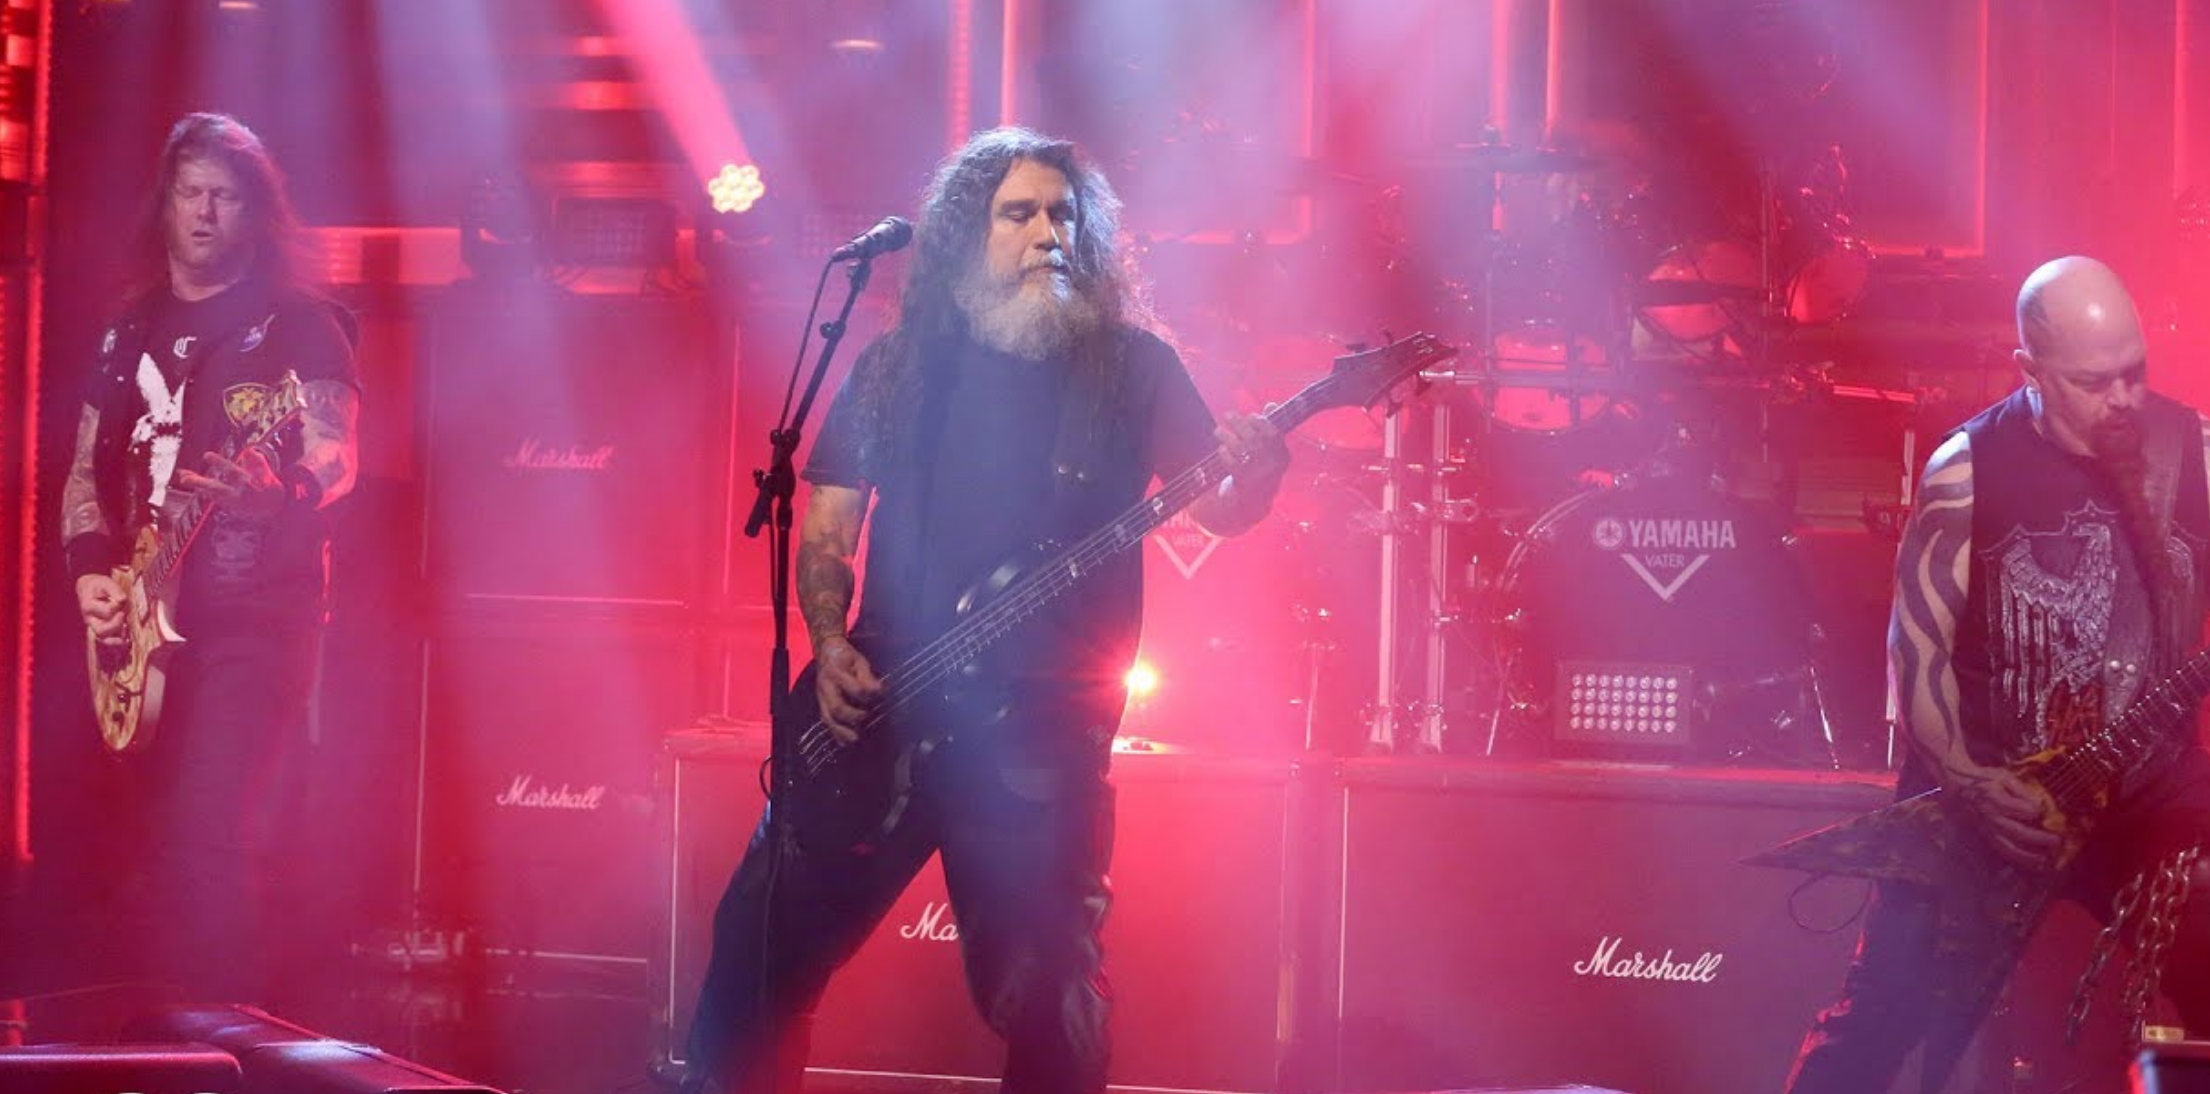 Slayer se puso fresa y fue a tocar Raining Blood con Jimmy Fallon